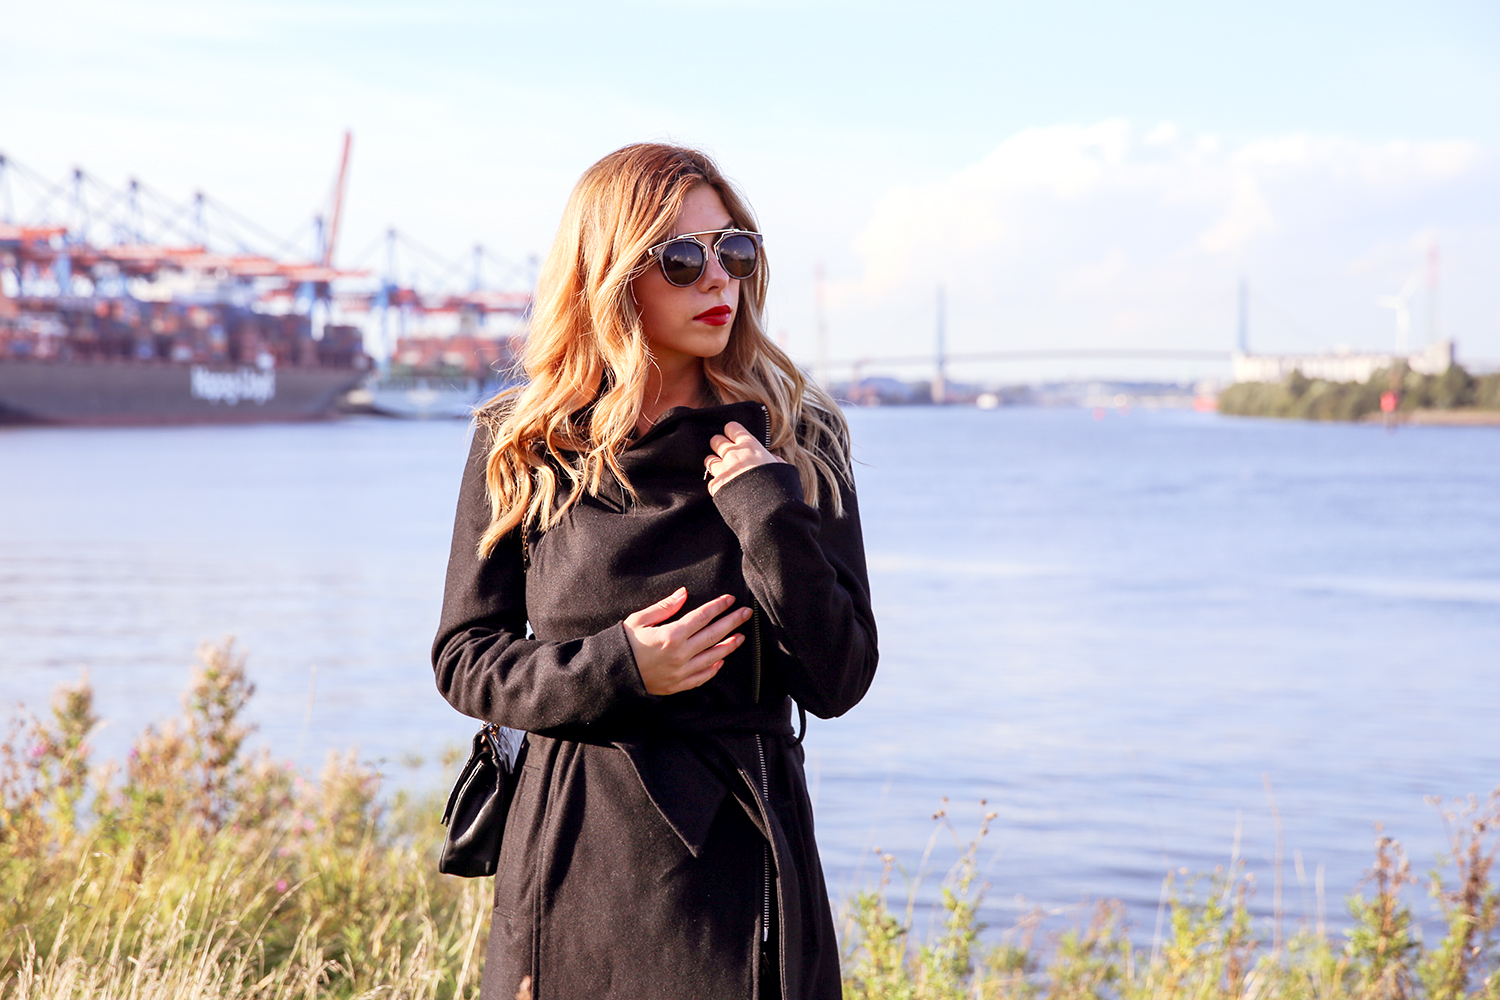 Luisa_Lion_Fashion_Blogger_Germany_Hamburg_edited